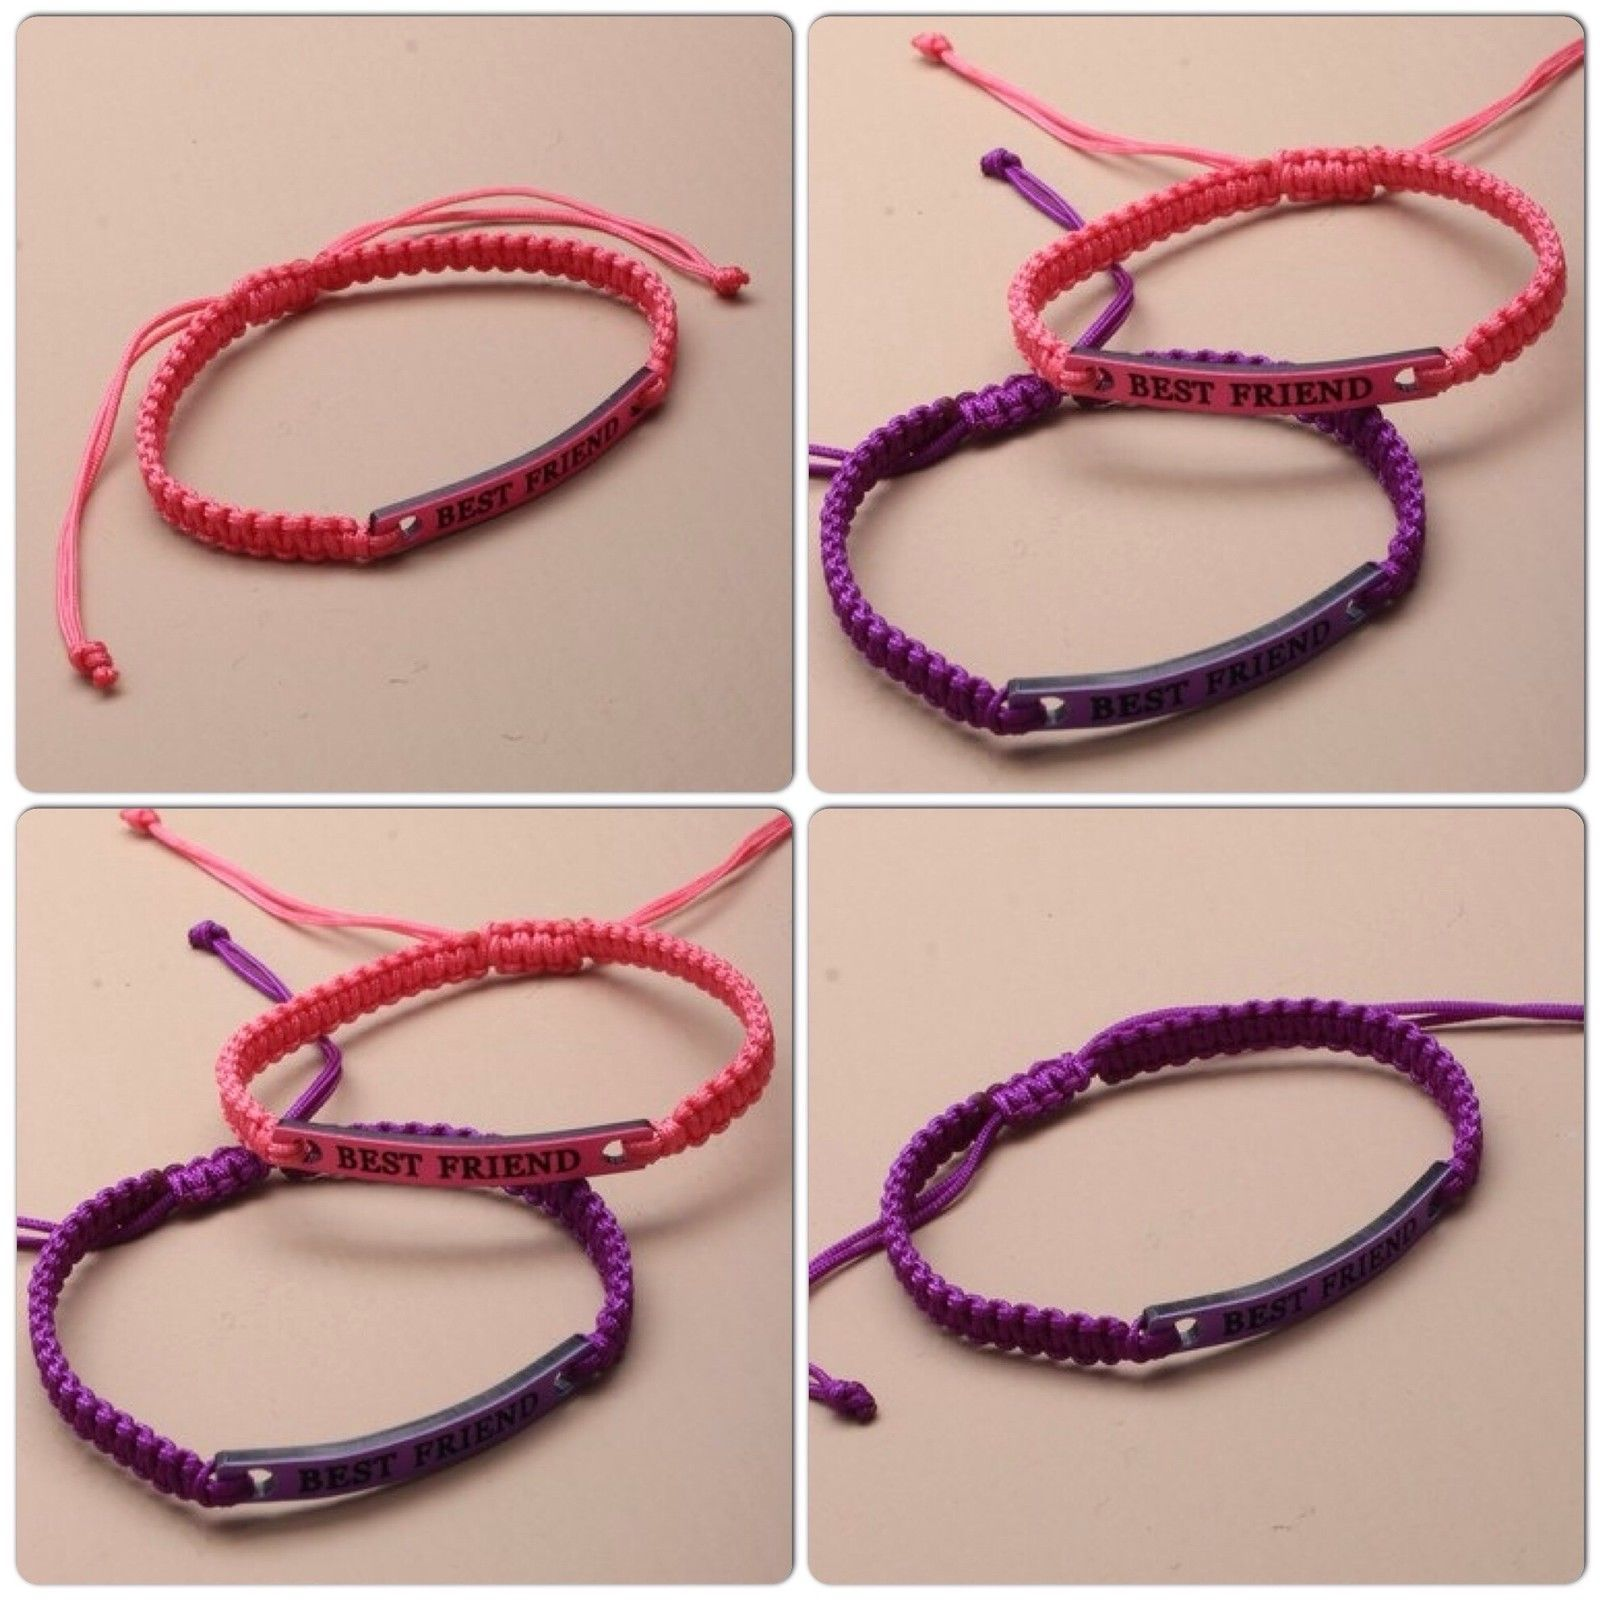 asp bracelet friend p friendship corded of best set